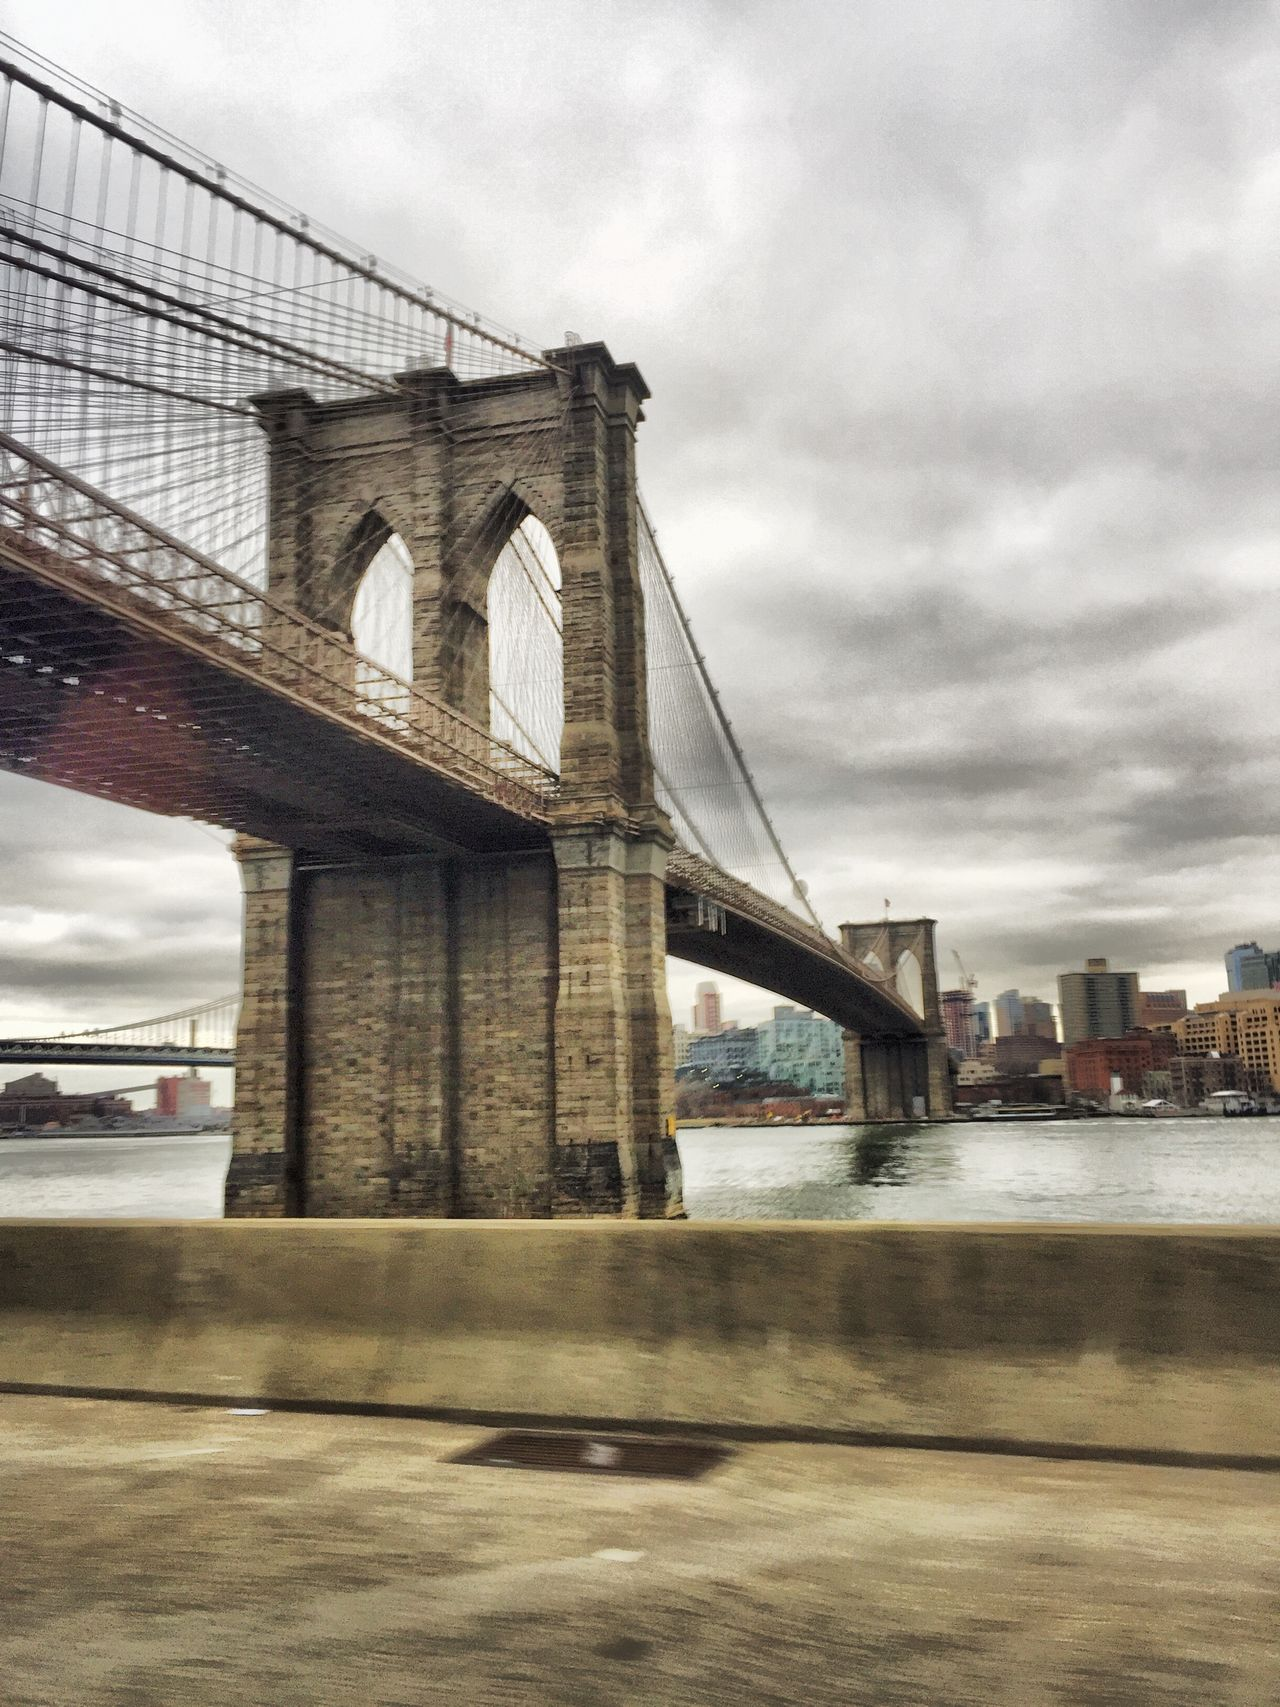 Architecture Blurred Motion Bridge Brooklyn Bridge  Built Structure City Cloud - Sky Clouds Connection Day Engineering HDR Movement Photography New York No People Outdoors River Sky Suspension Bridge Transportation Water